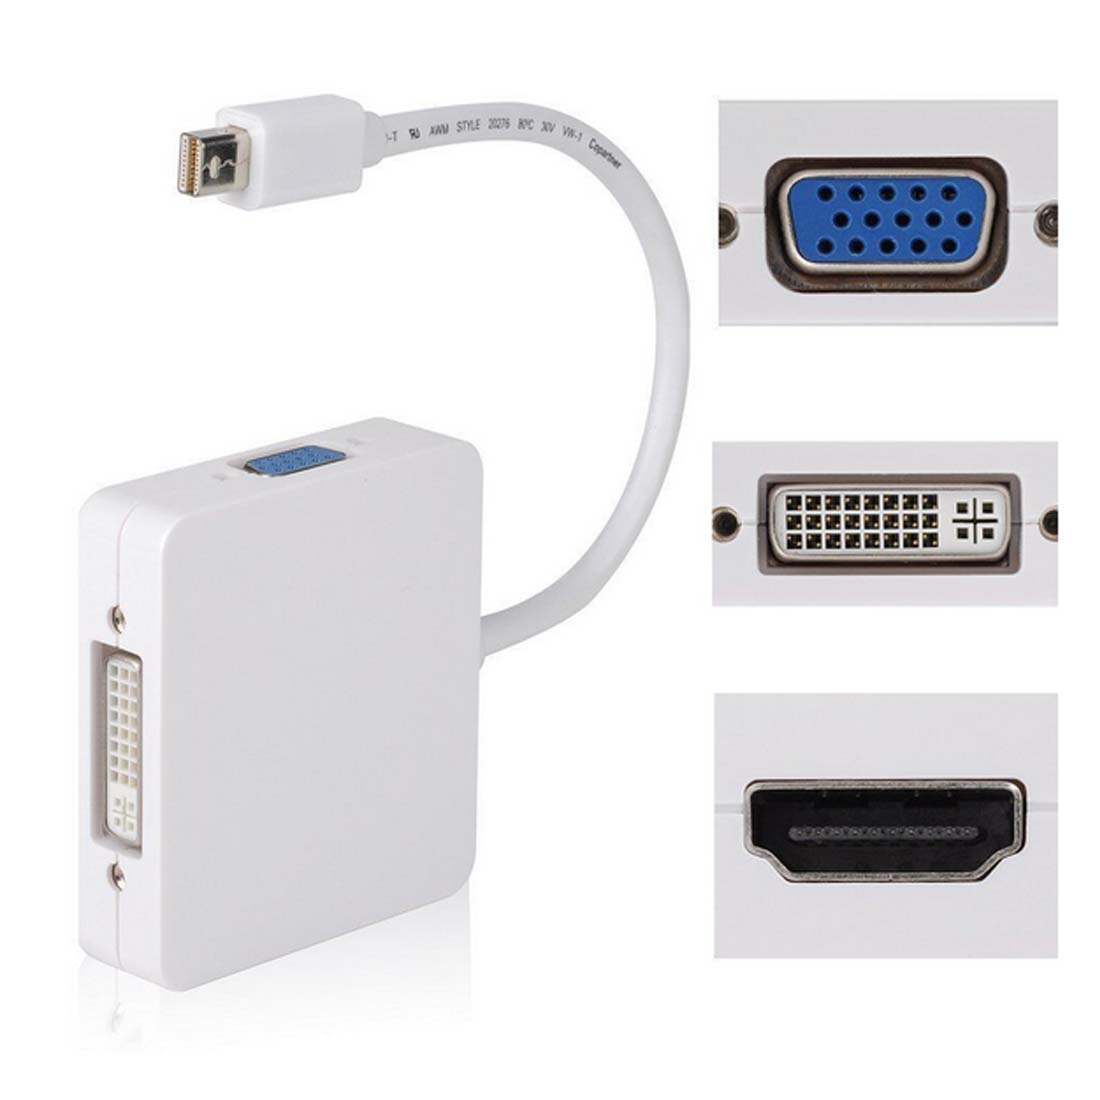 Marsnaska 3 in1 Thunderbolt Mini Displayport DP to HDMI DVI VGA Adapter Display port Cable for apple MacBook Pro Mac Book Air нож туристический m2 сталь n690 южный крест